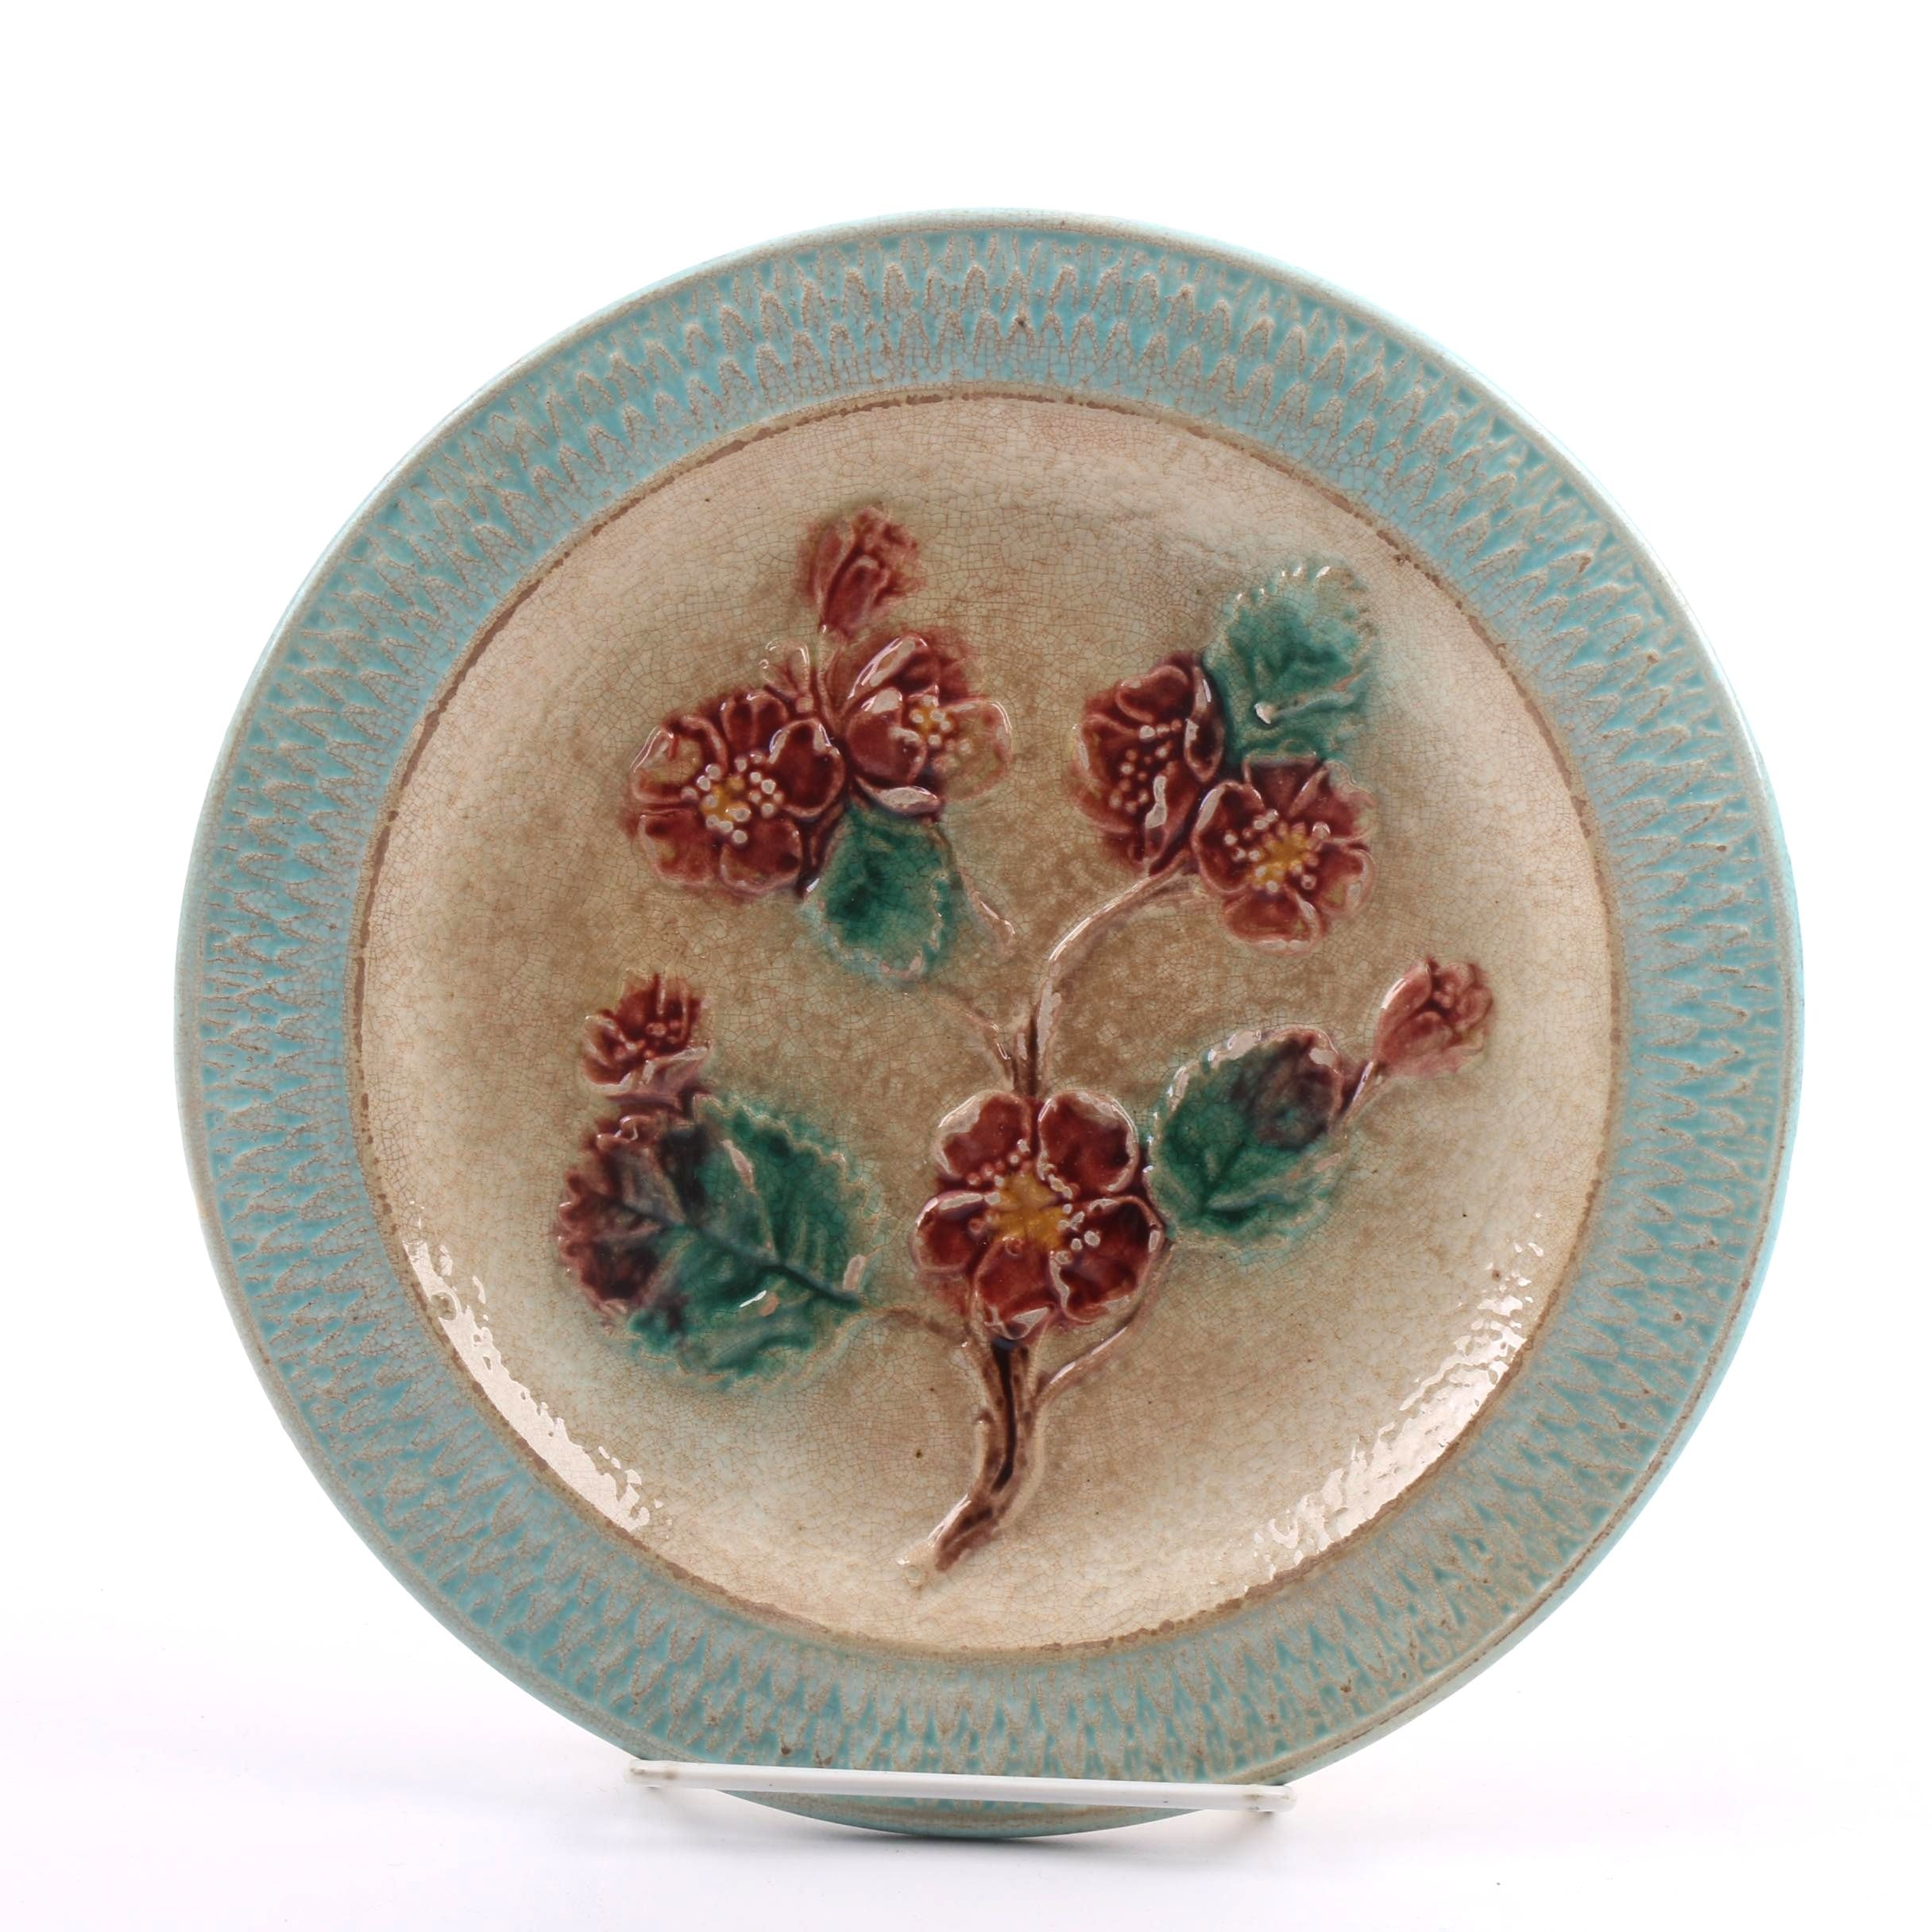 Antique Floral-Themed Majolica Plate